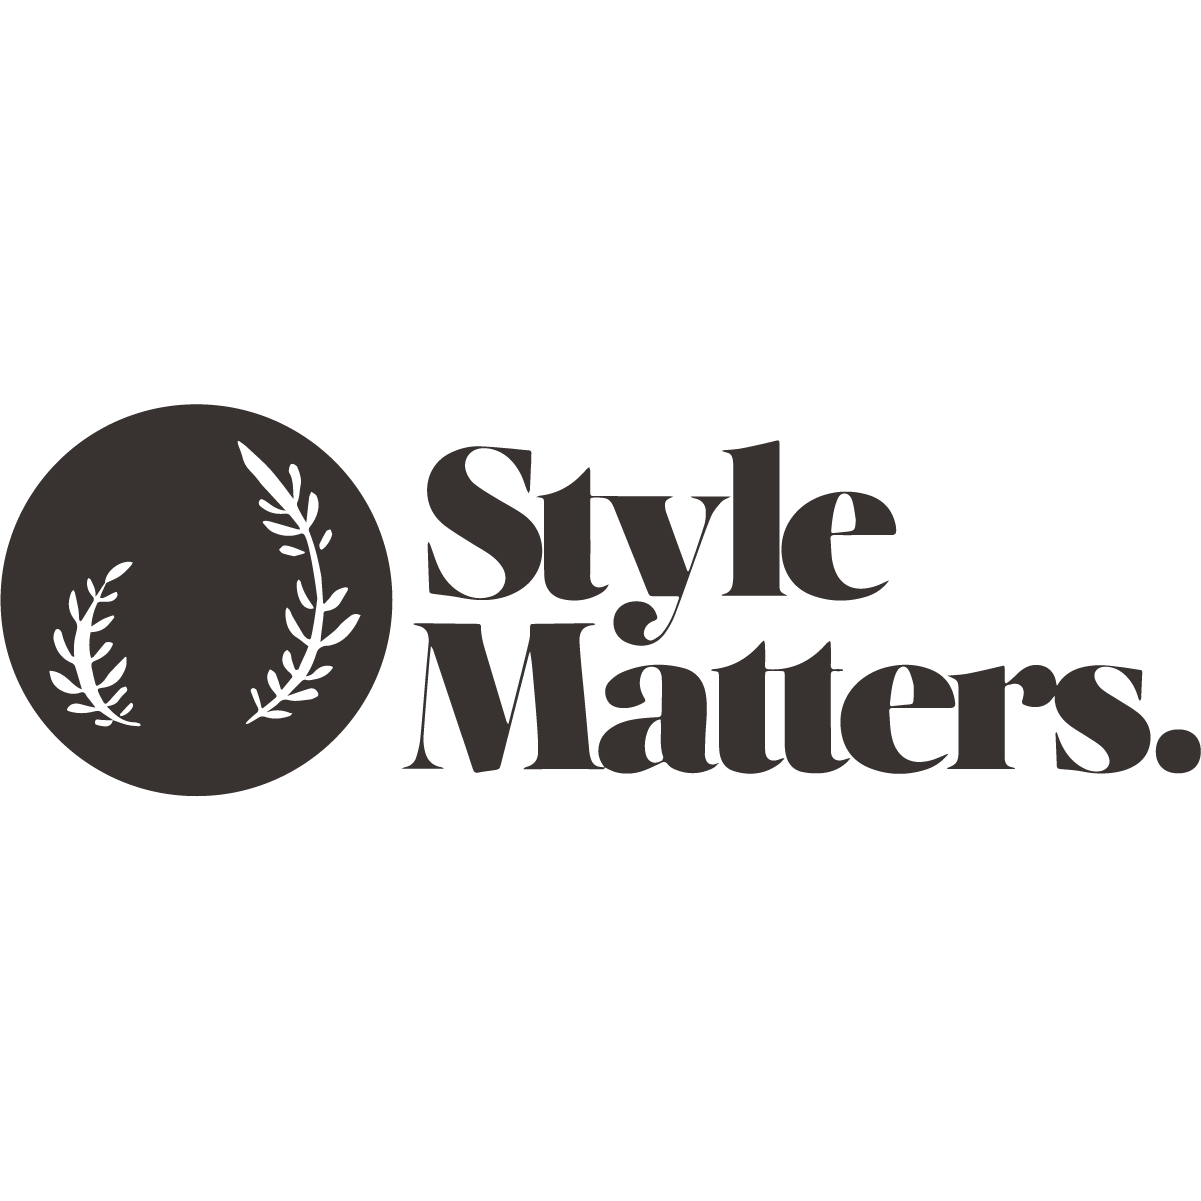 Style Matters@300x.png